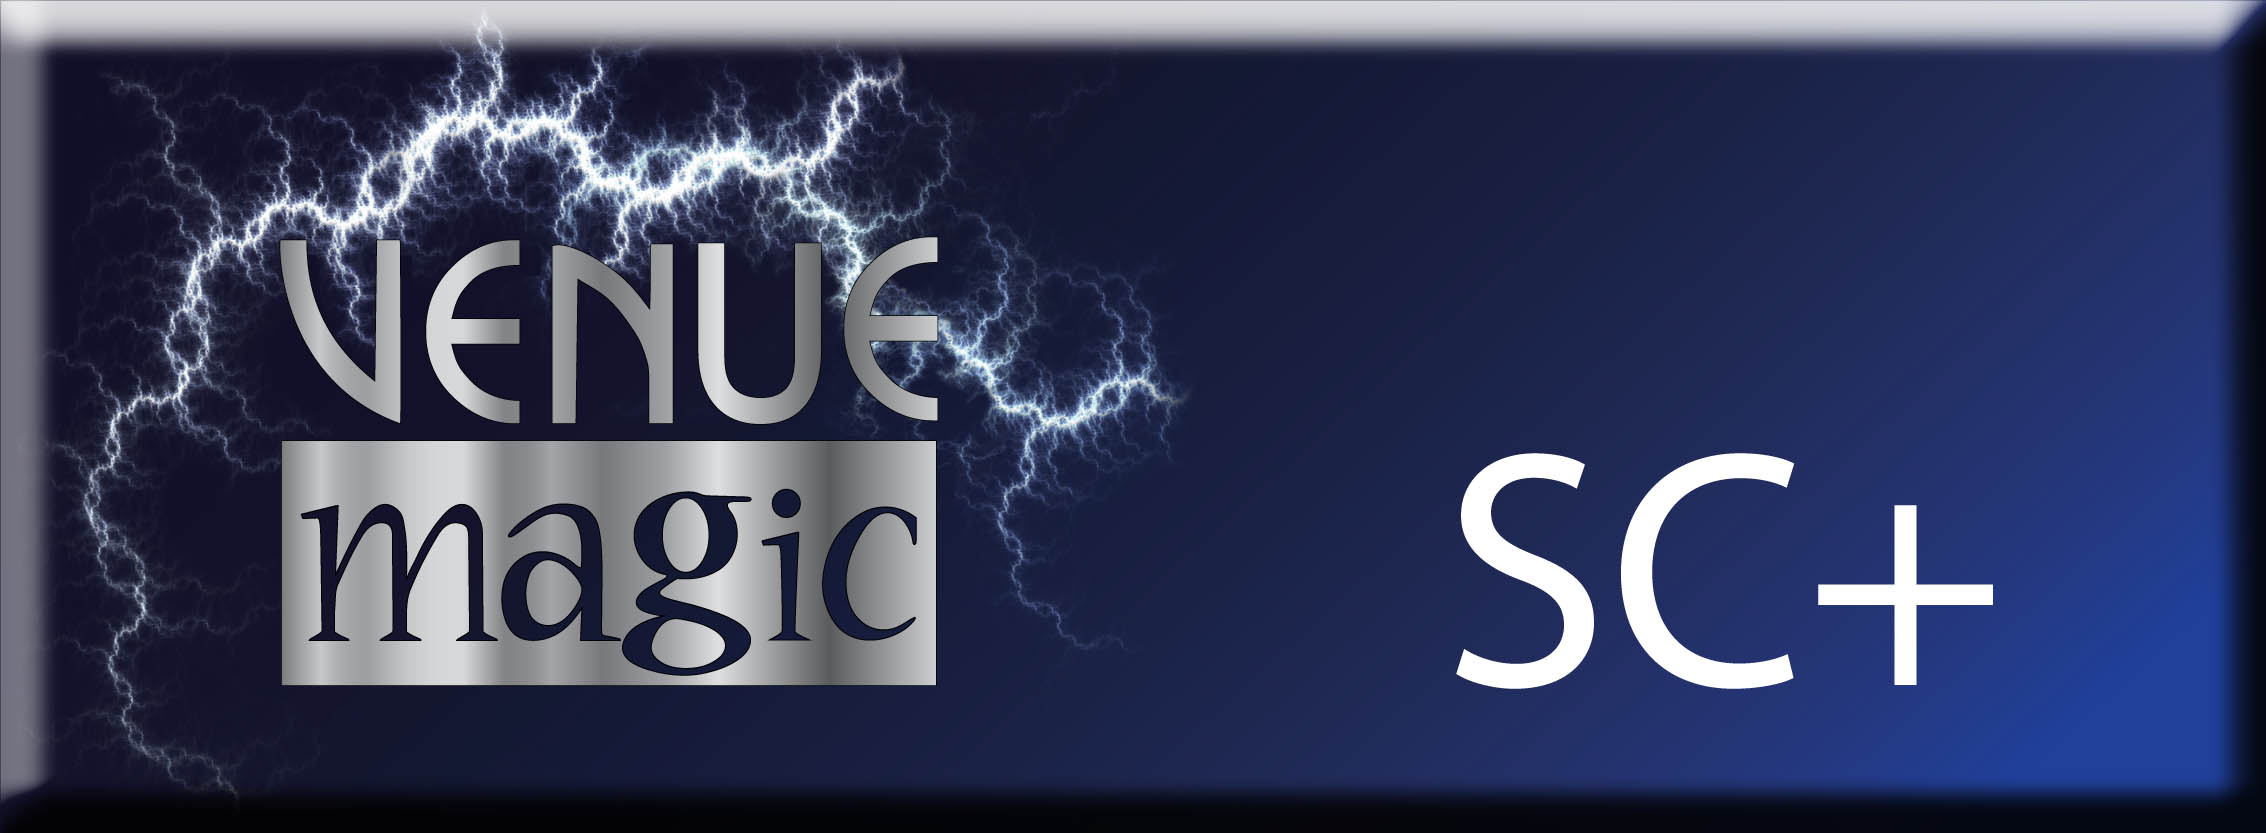 VenueMagic SC+